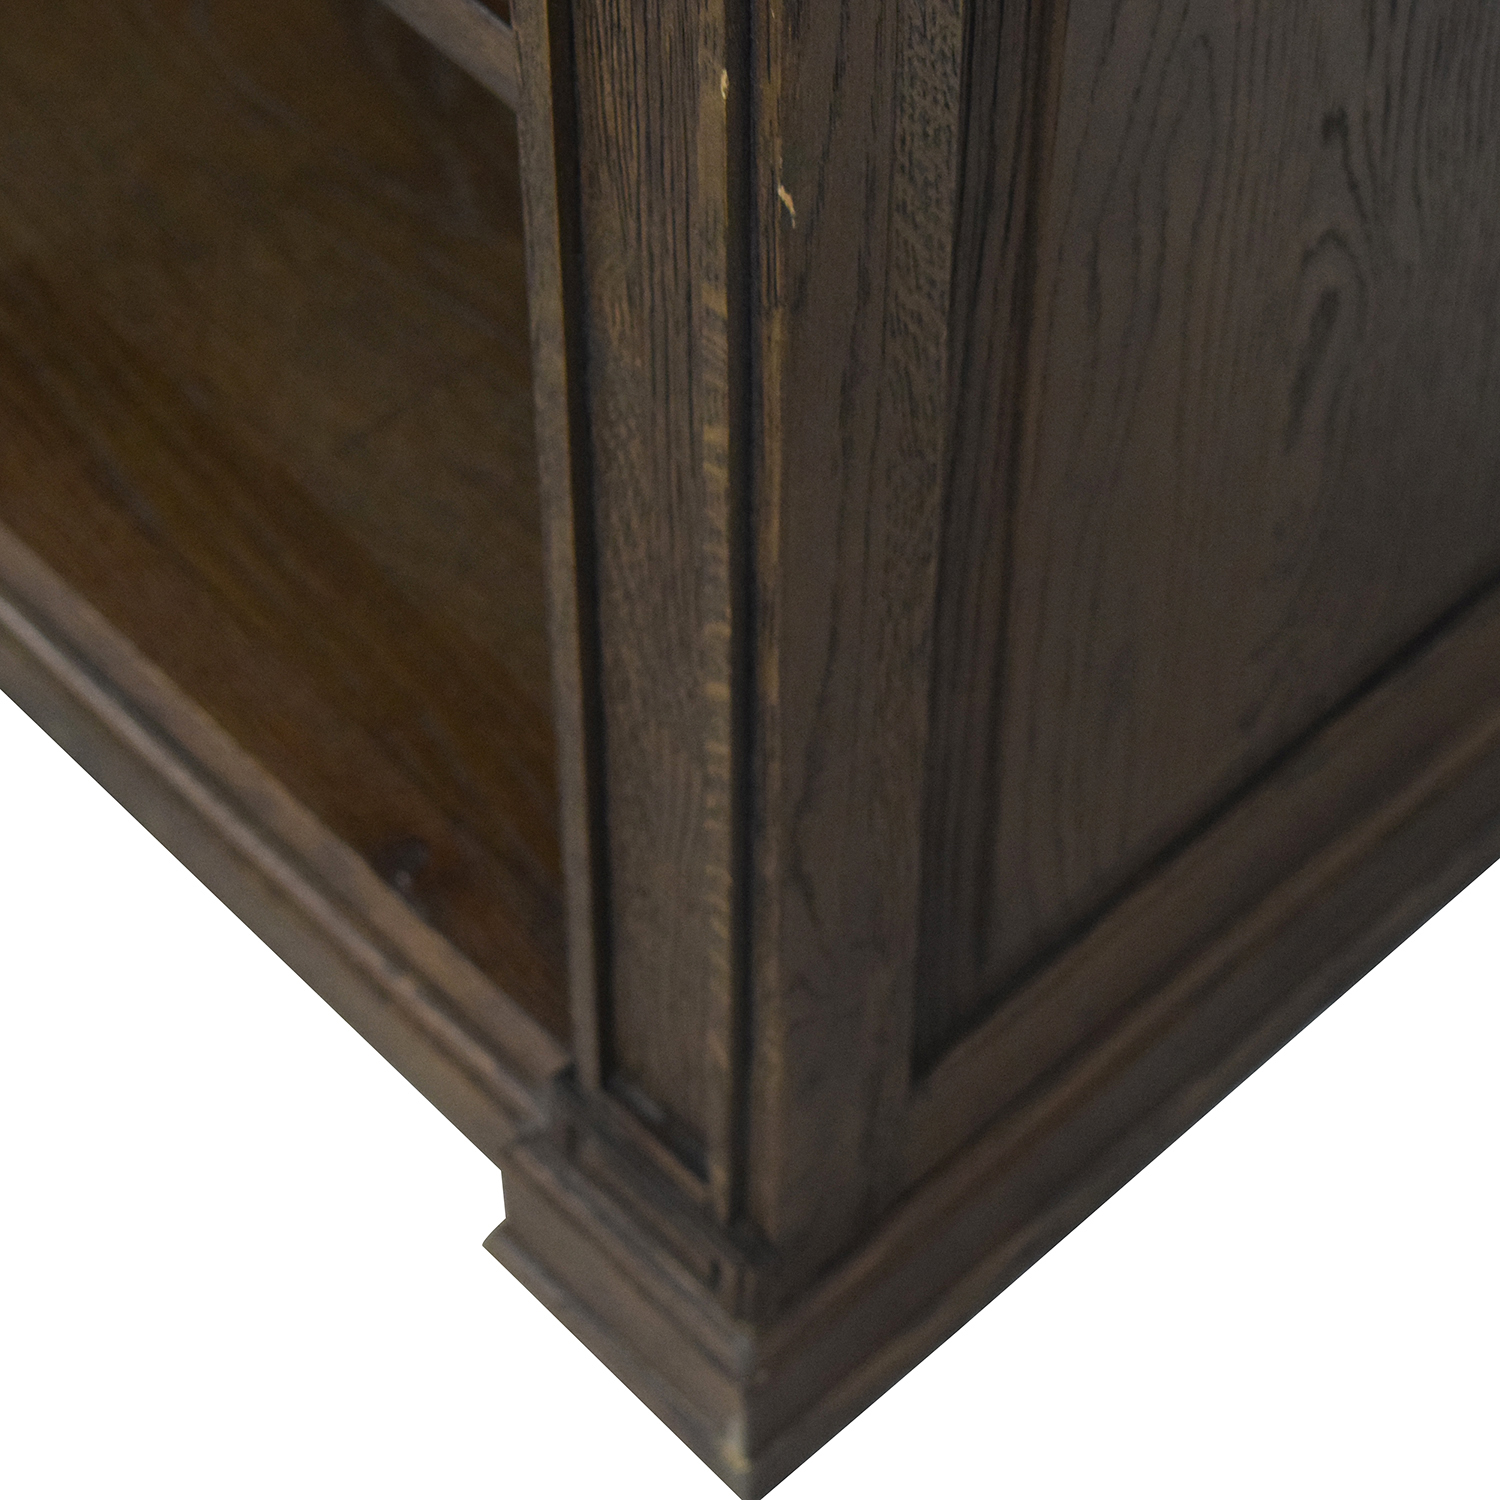 Restoration Hardware Restoration Hardware Wood Library Bookcase with Desk used